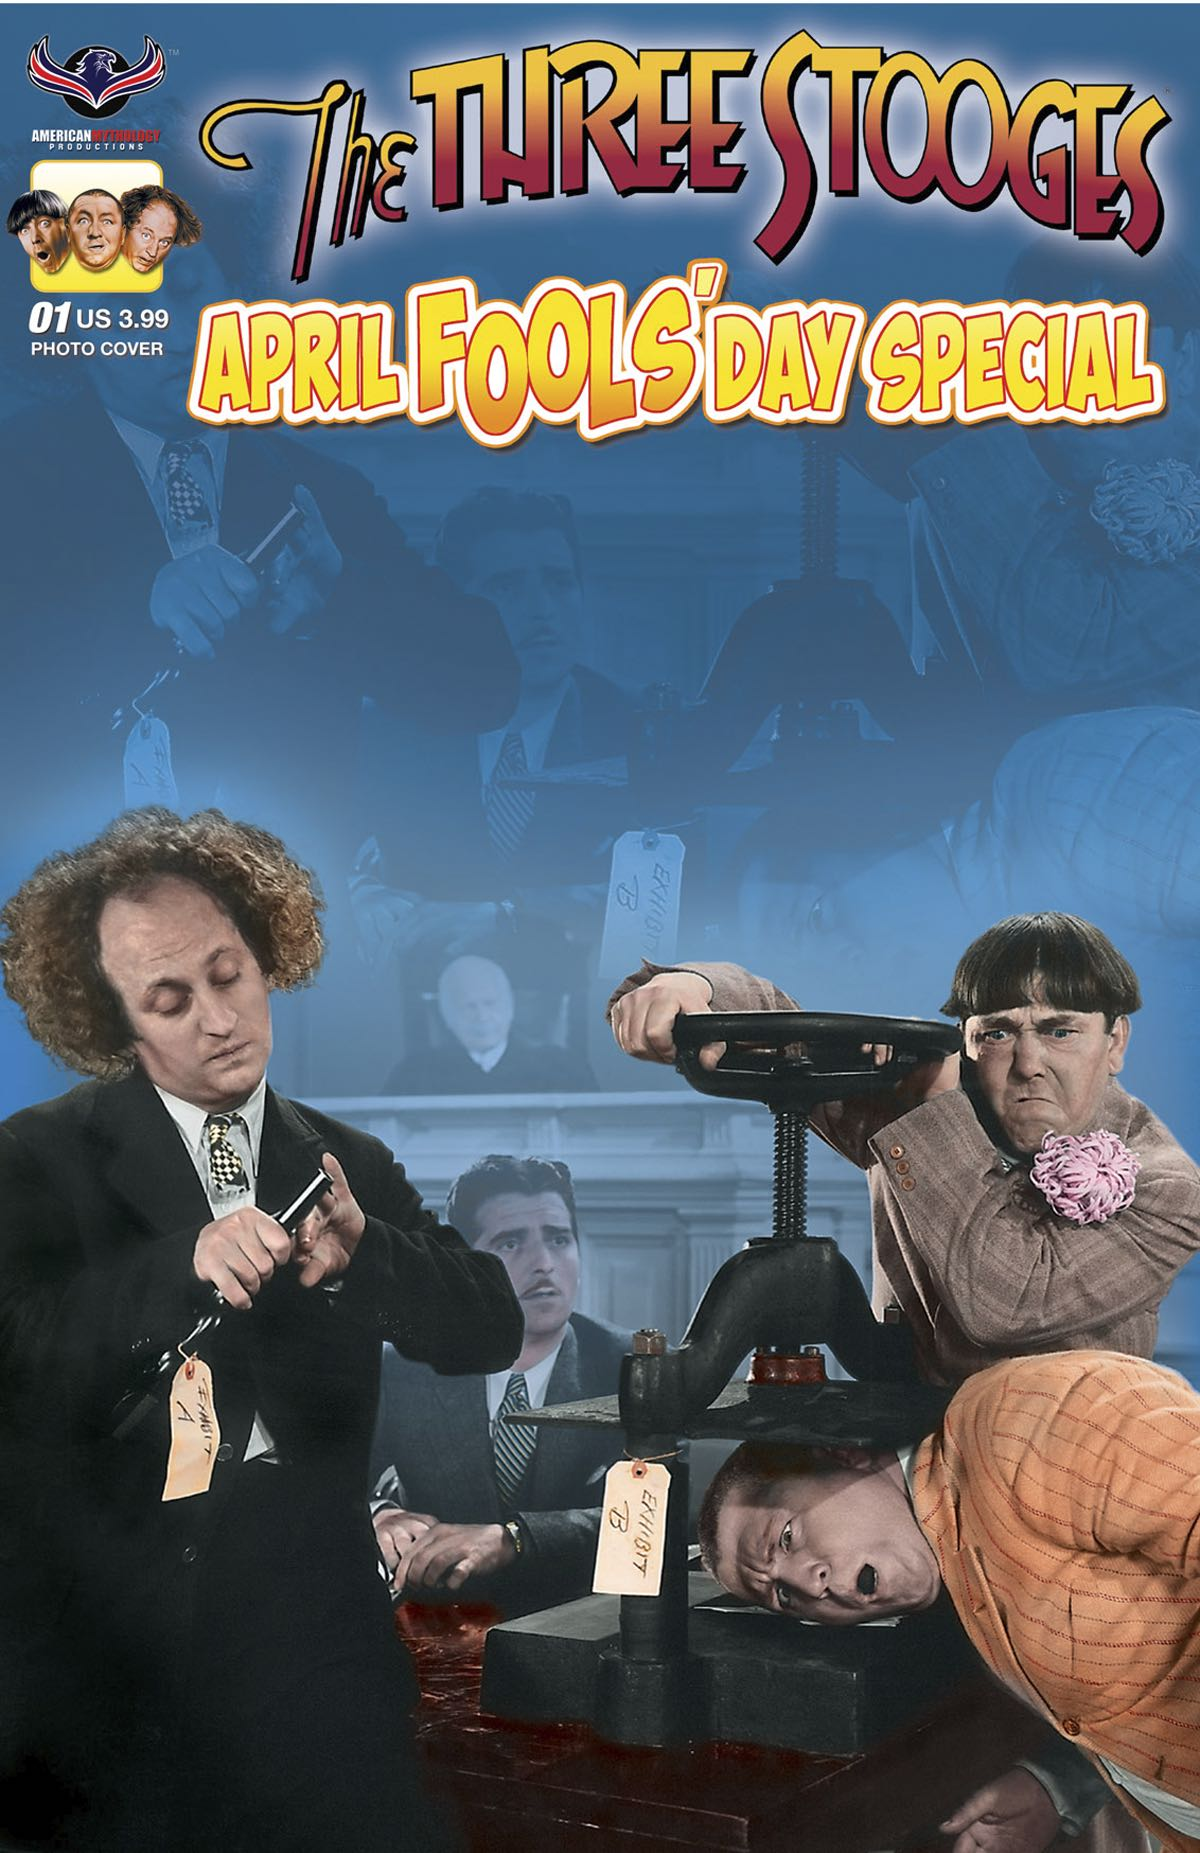 The Three Stooges April Fools Day Photo Cover